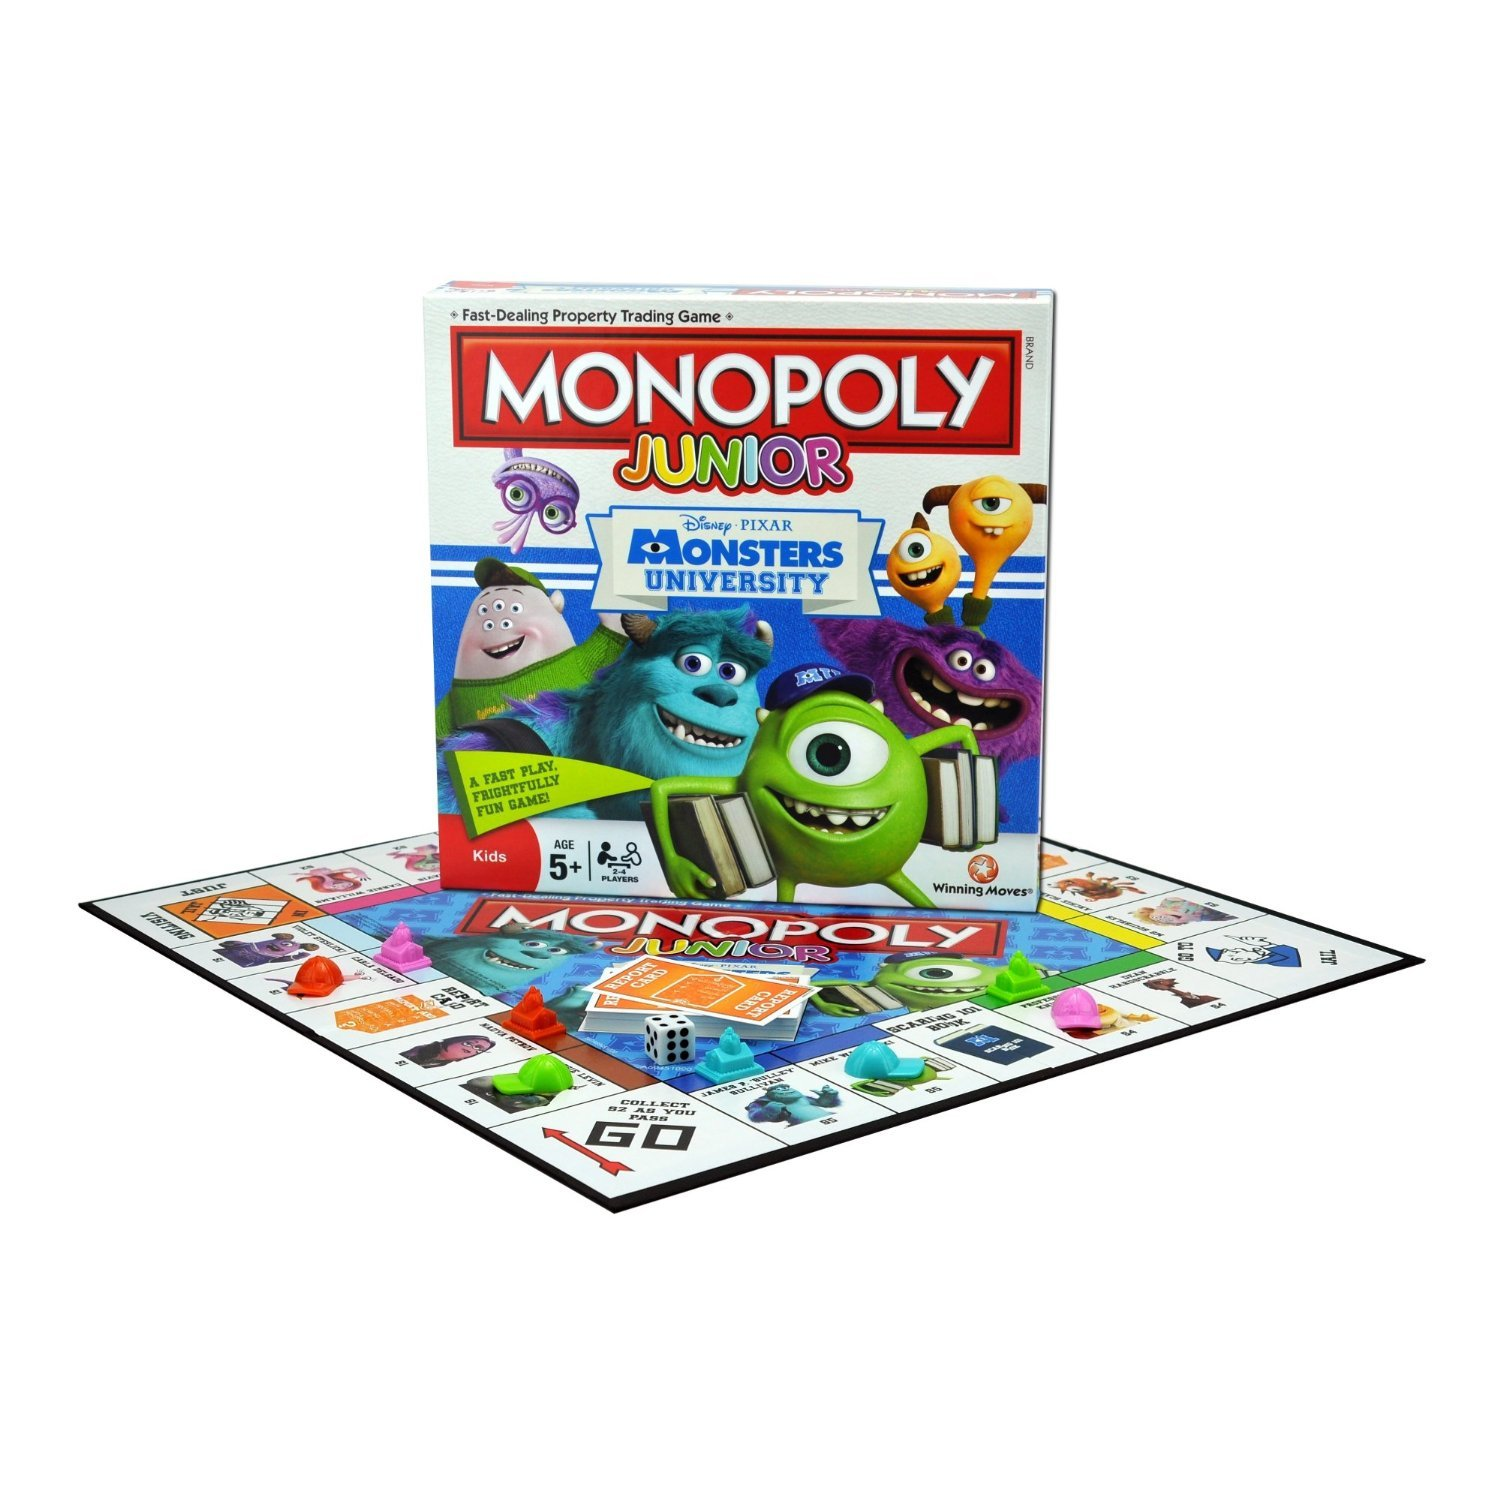 Monsters University Monopoly Junior Board Game Amazon Toys